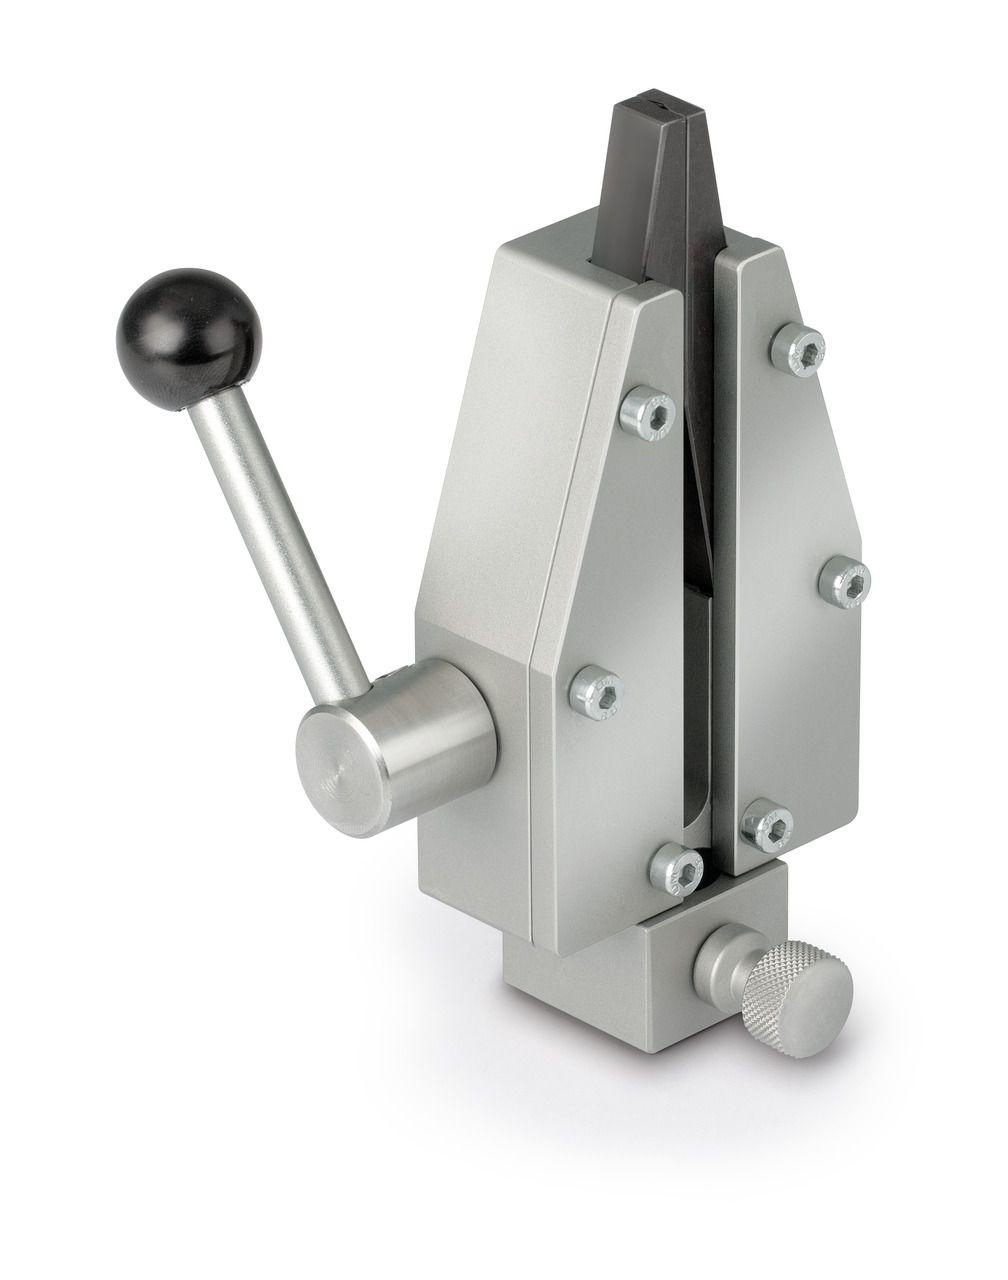 AD 9080 Wedge Tension Clamp